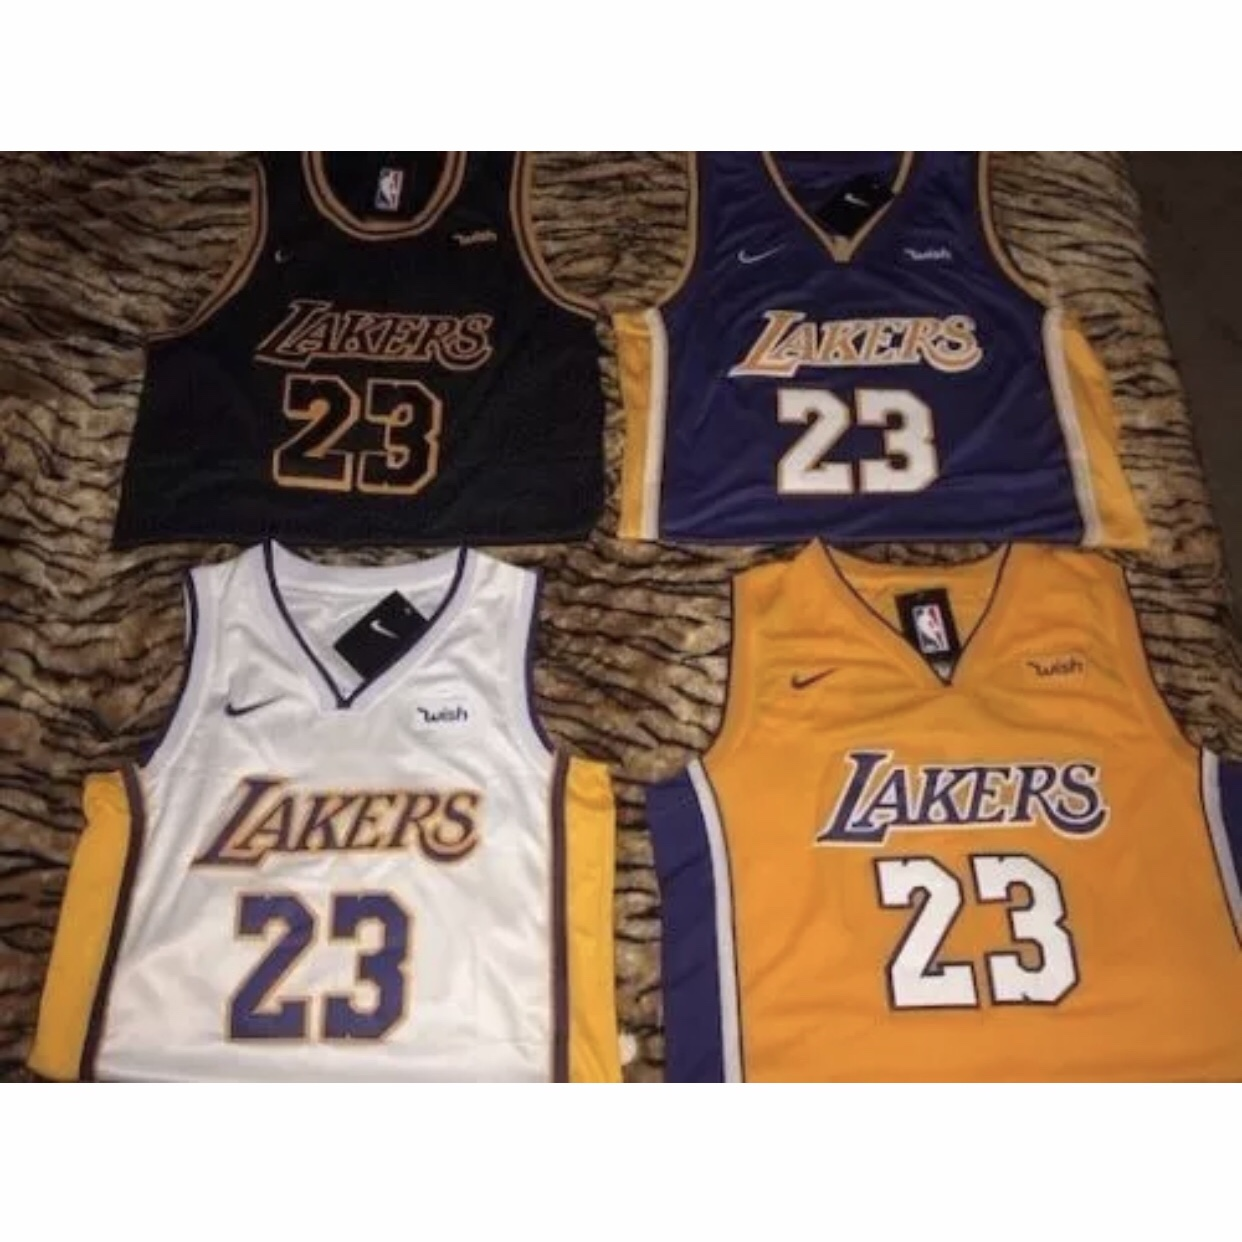 cheap for discount 4fe4e c1b21 Lebron James Lakers #23 Jersey Edition Black Purple... - Depop